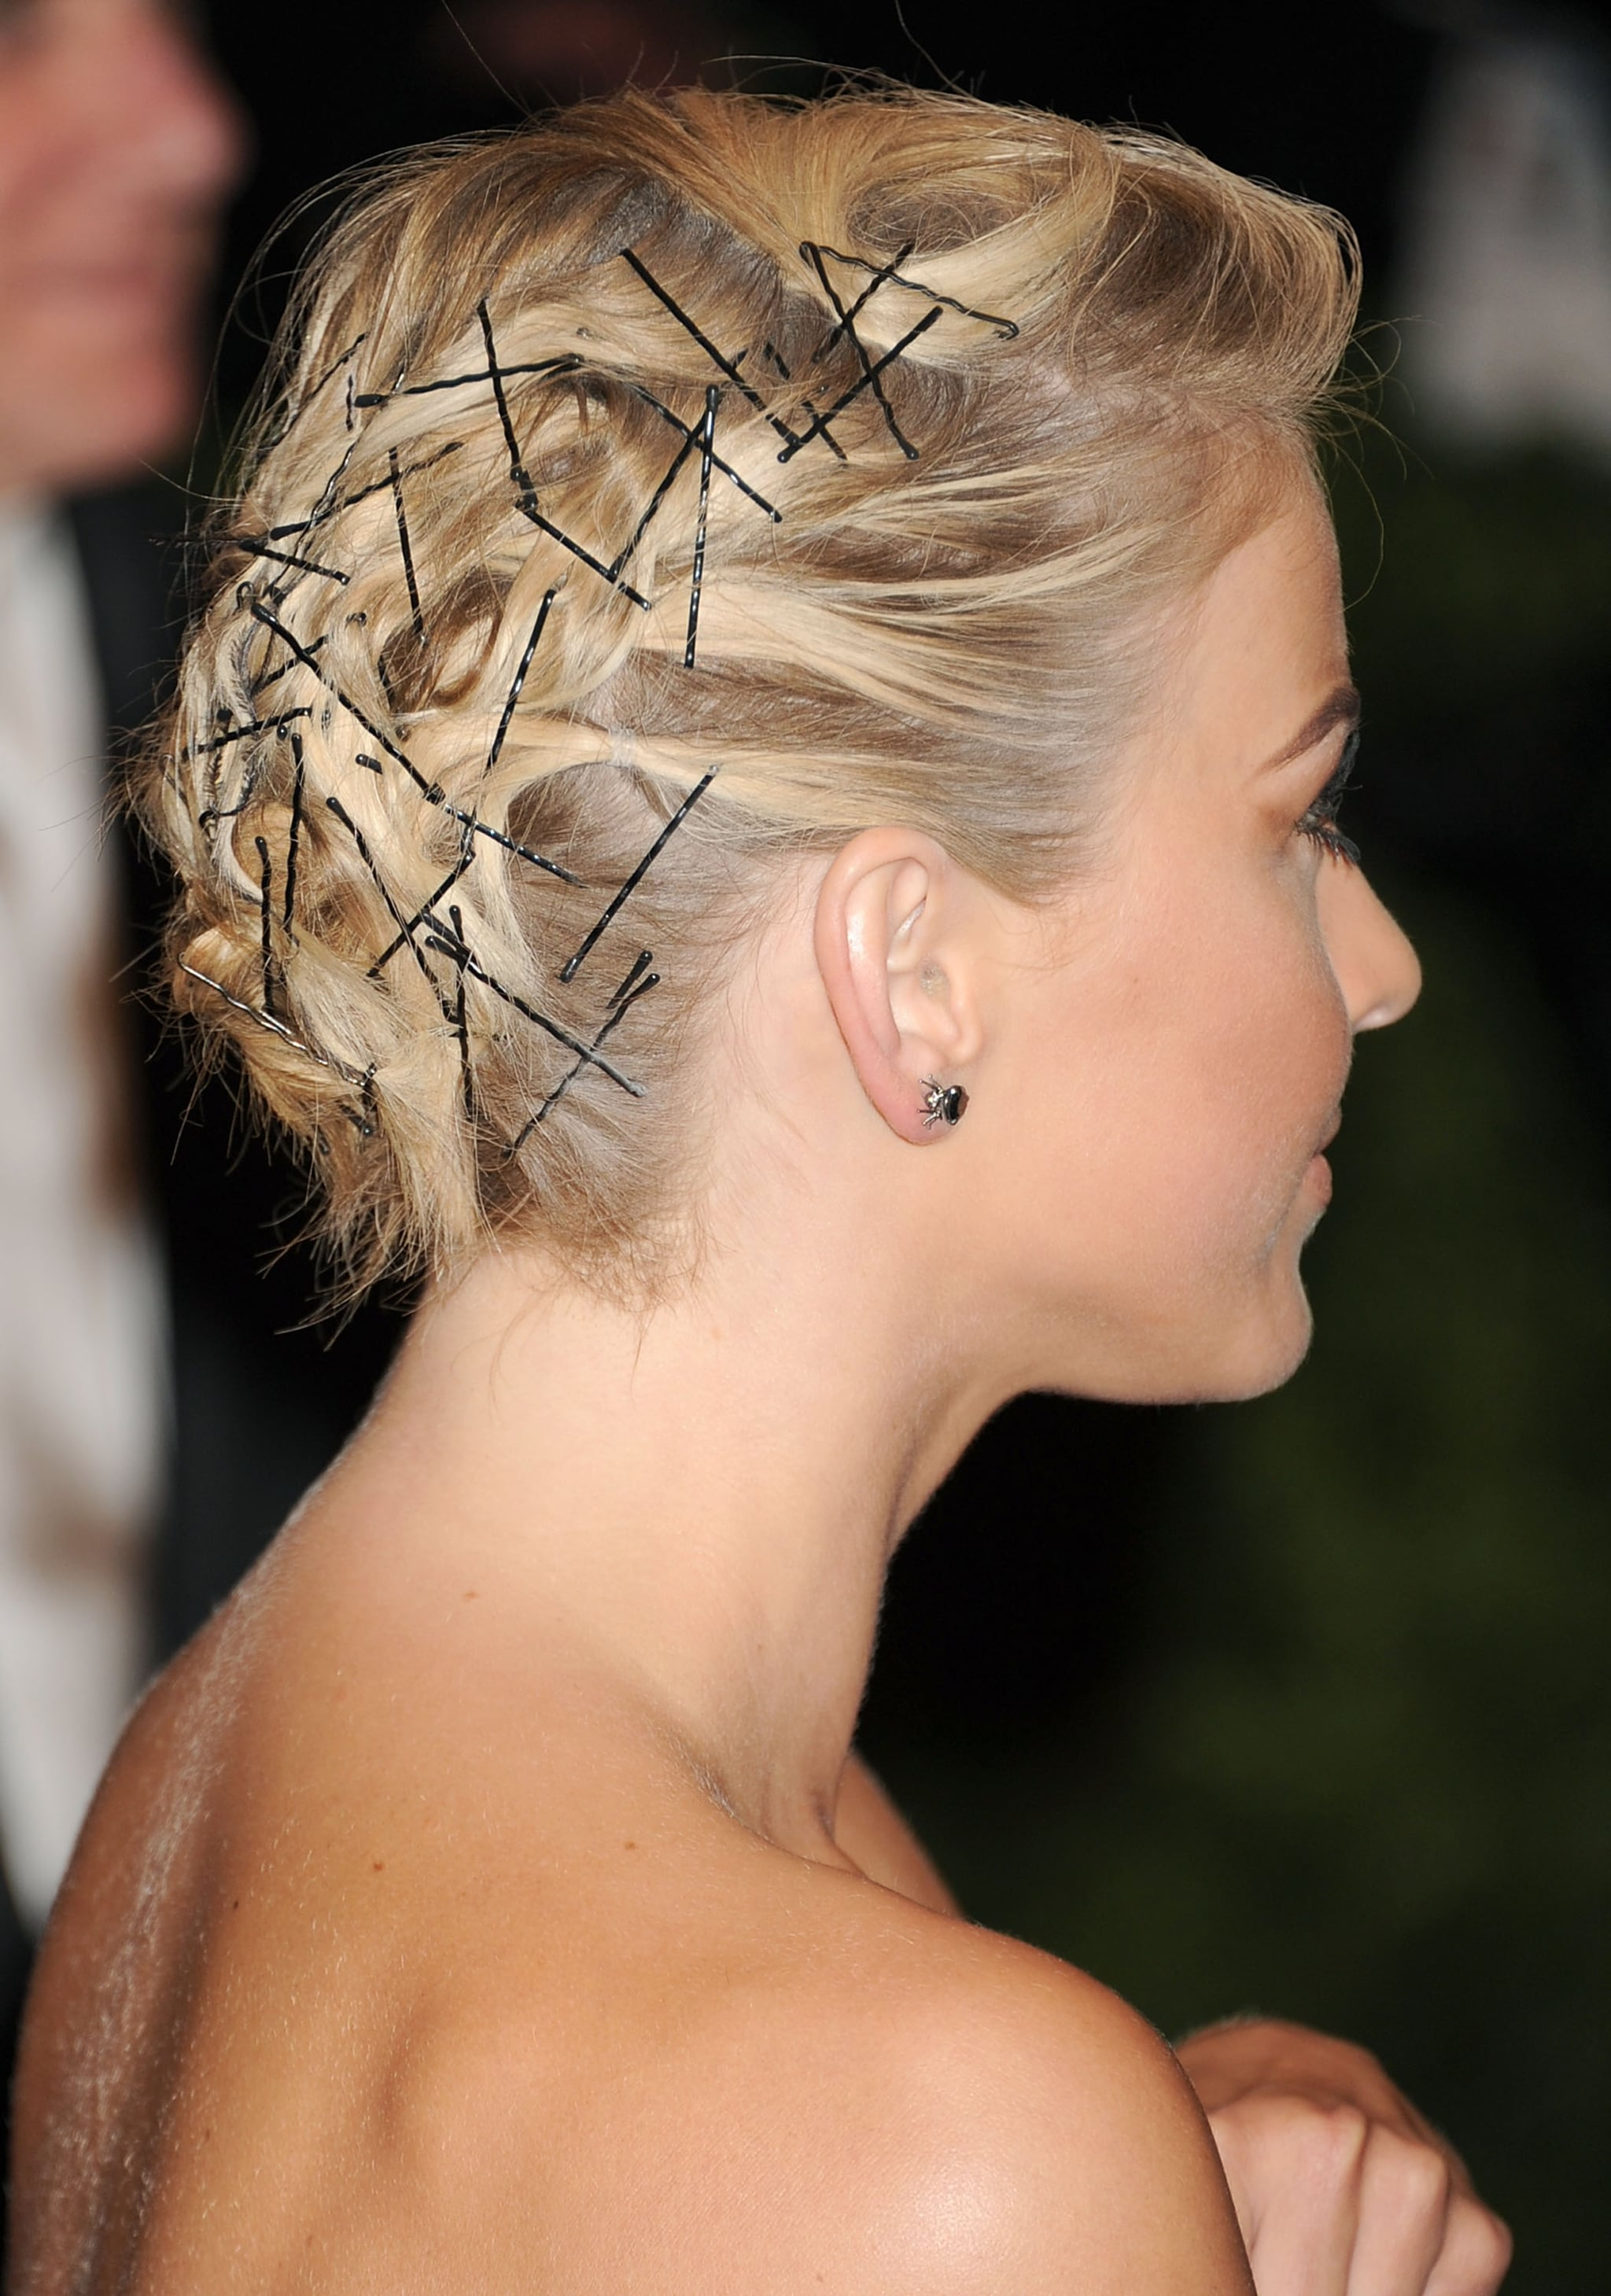 Bobby pins were the focus of Julianne Hough's Met Gala hairstyle. She wore over 100 in her updo!